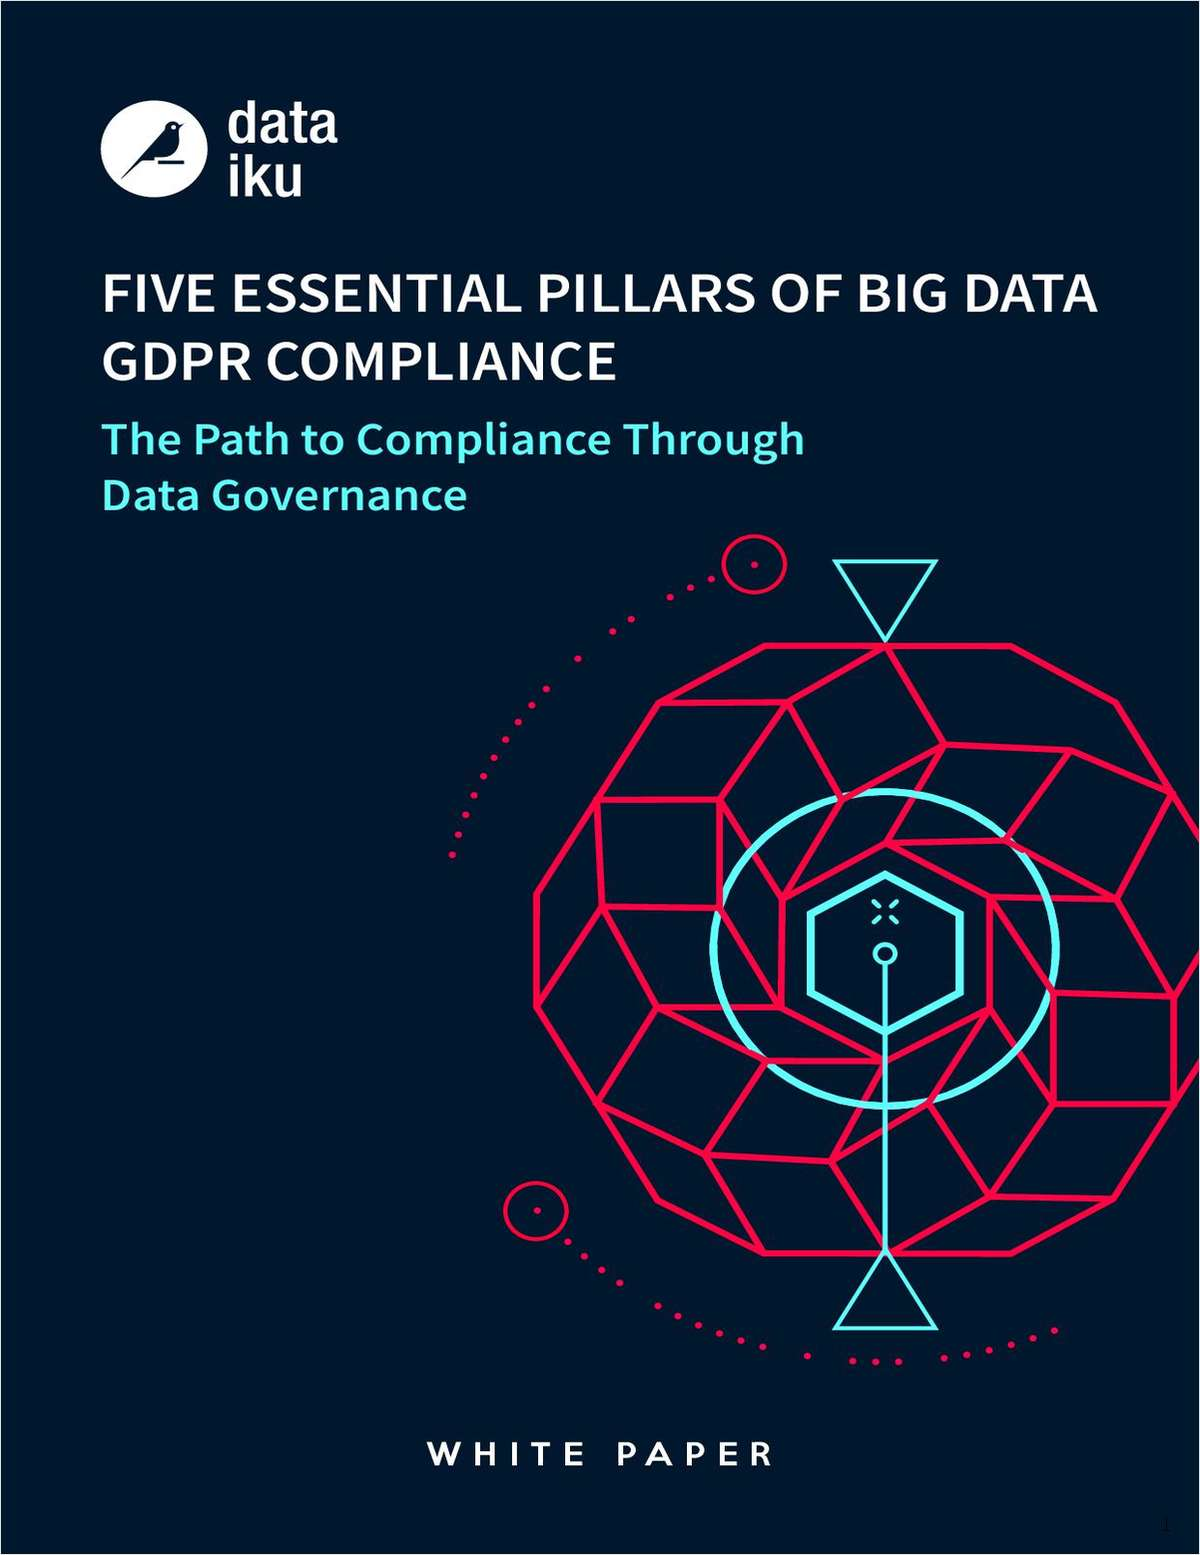 Five Essential Pillars of Big Data GDPR Compliance